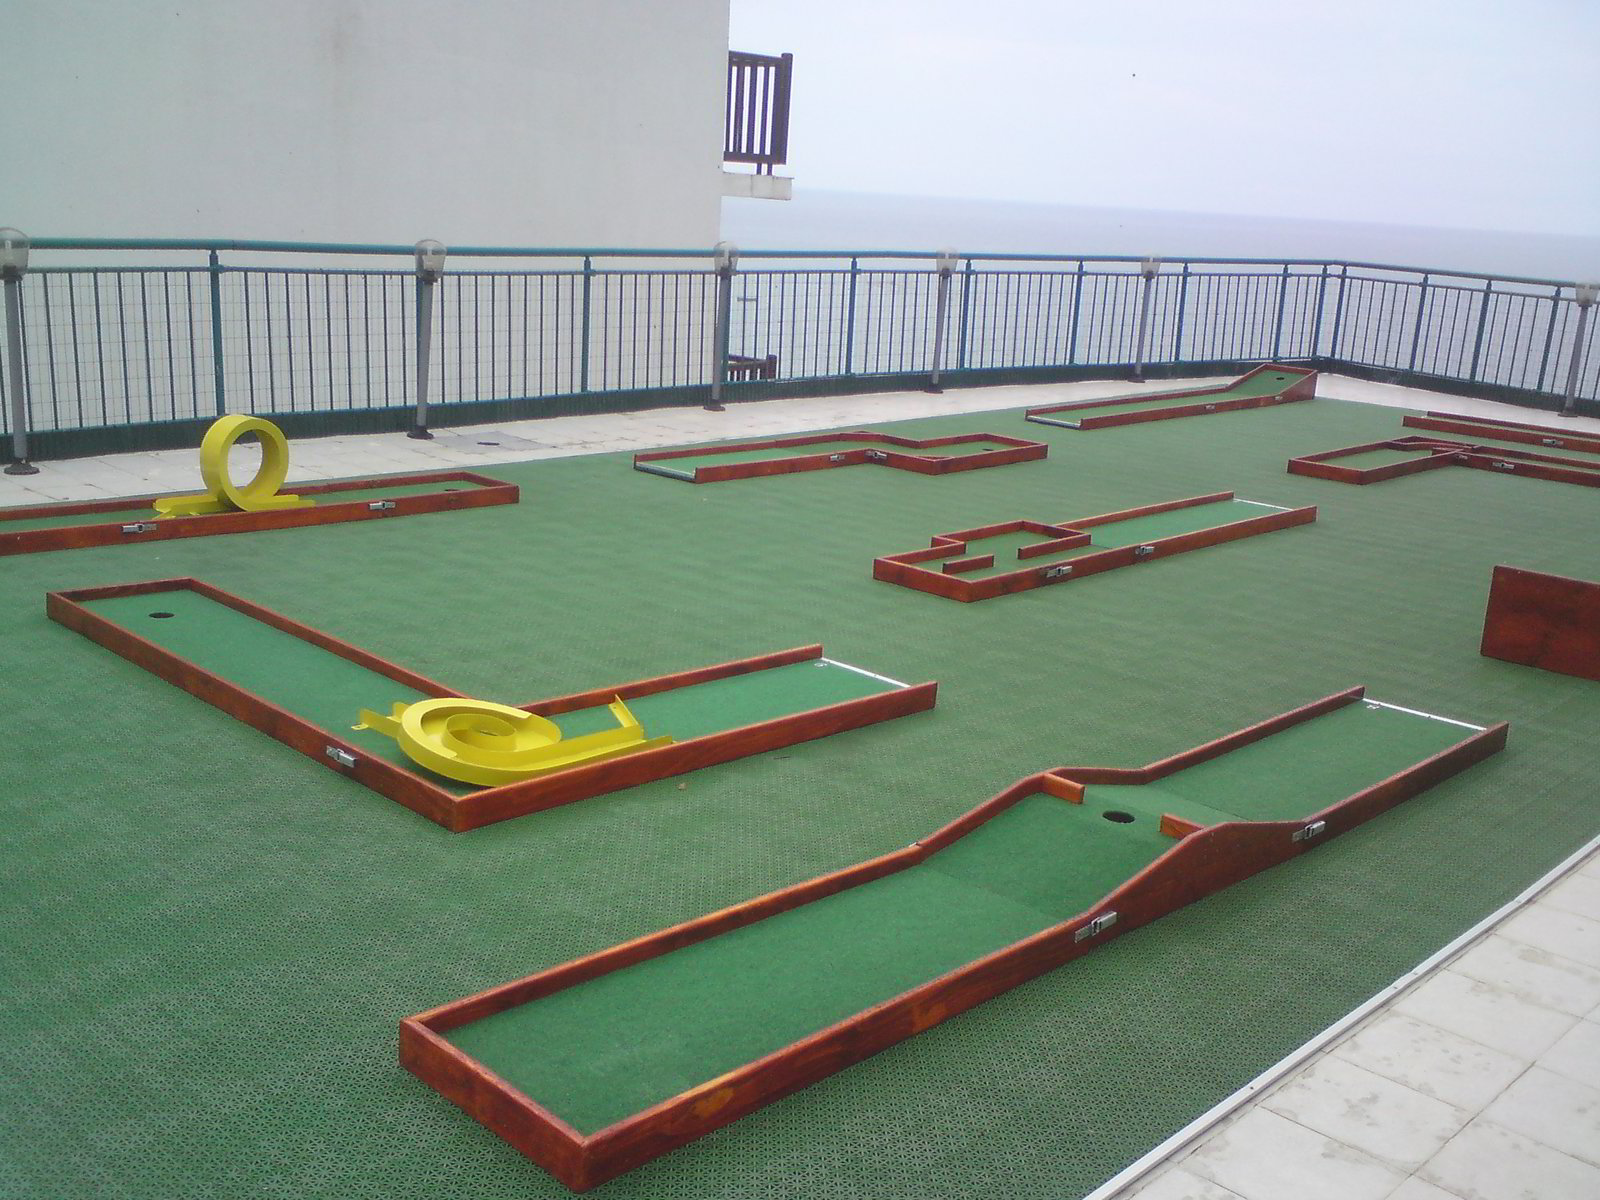 Pleasant How To Build A Portable Miniature Golf Course Download Free Architecture Designs Intelgarnamadebymaigaardcom